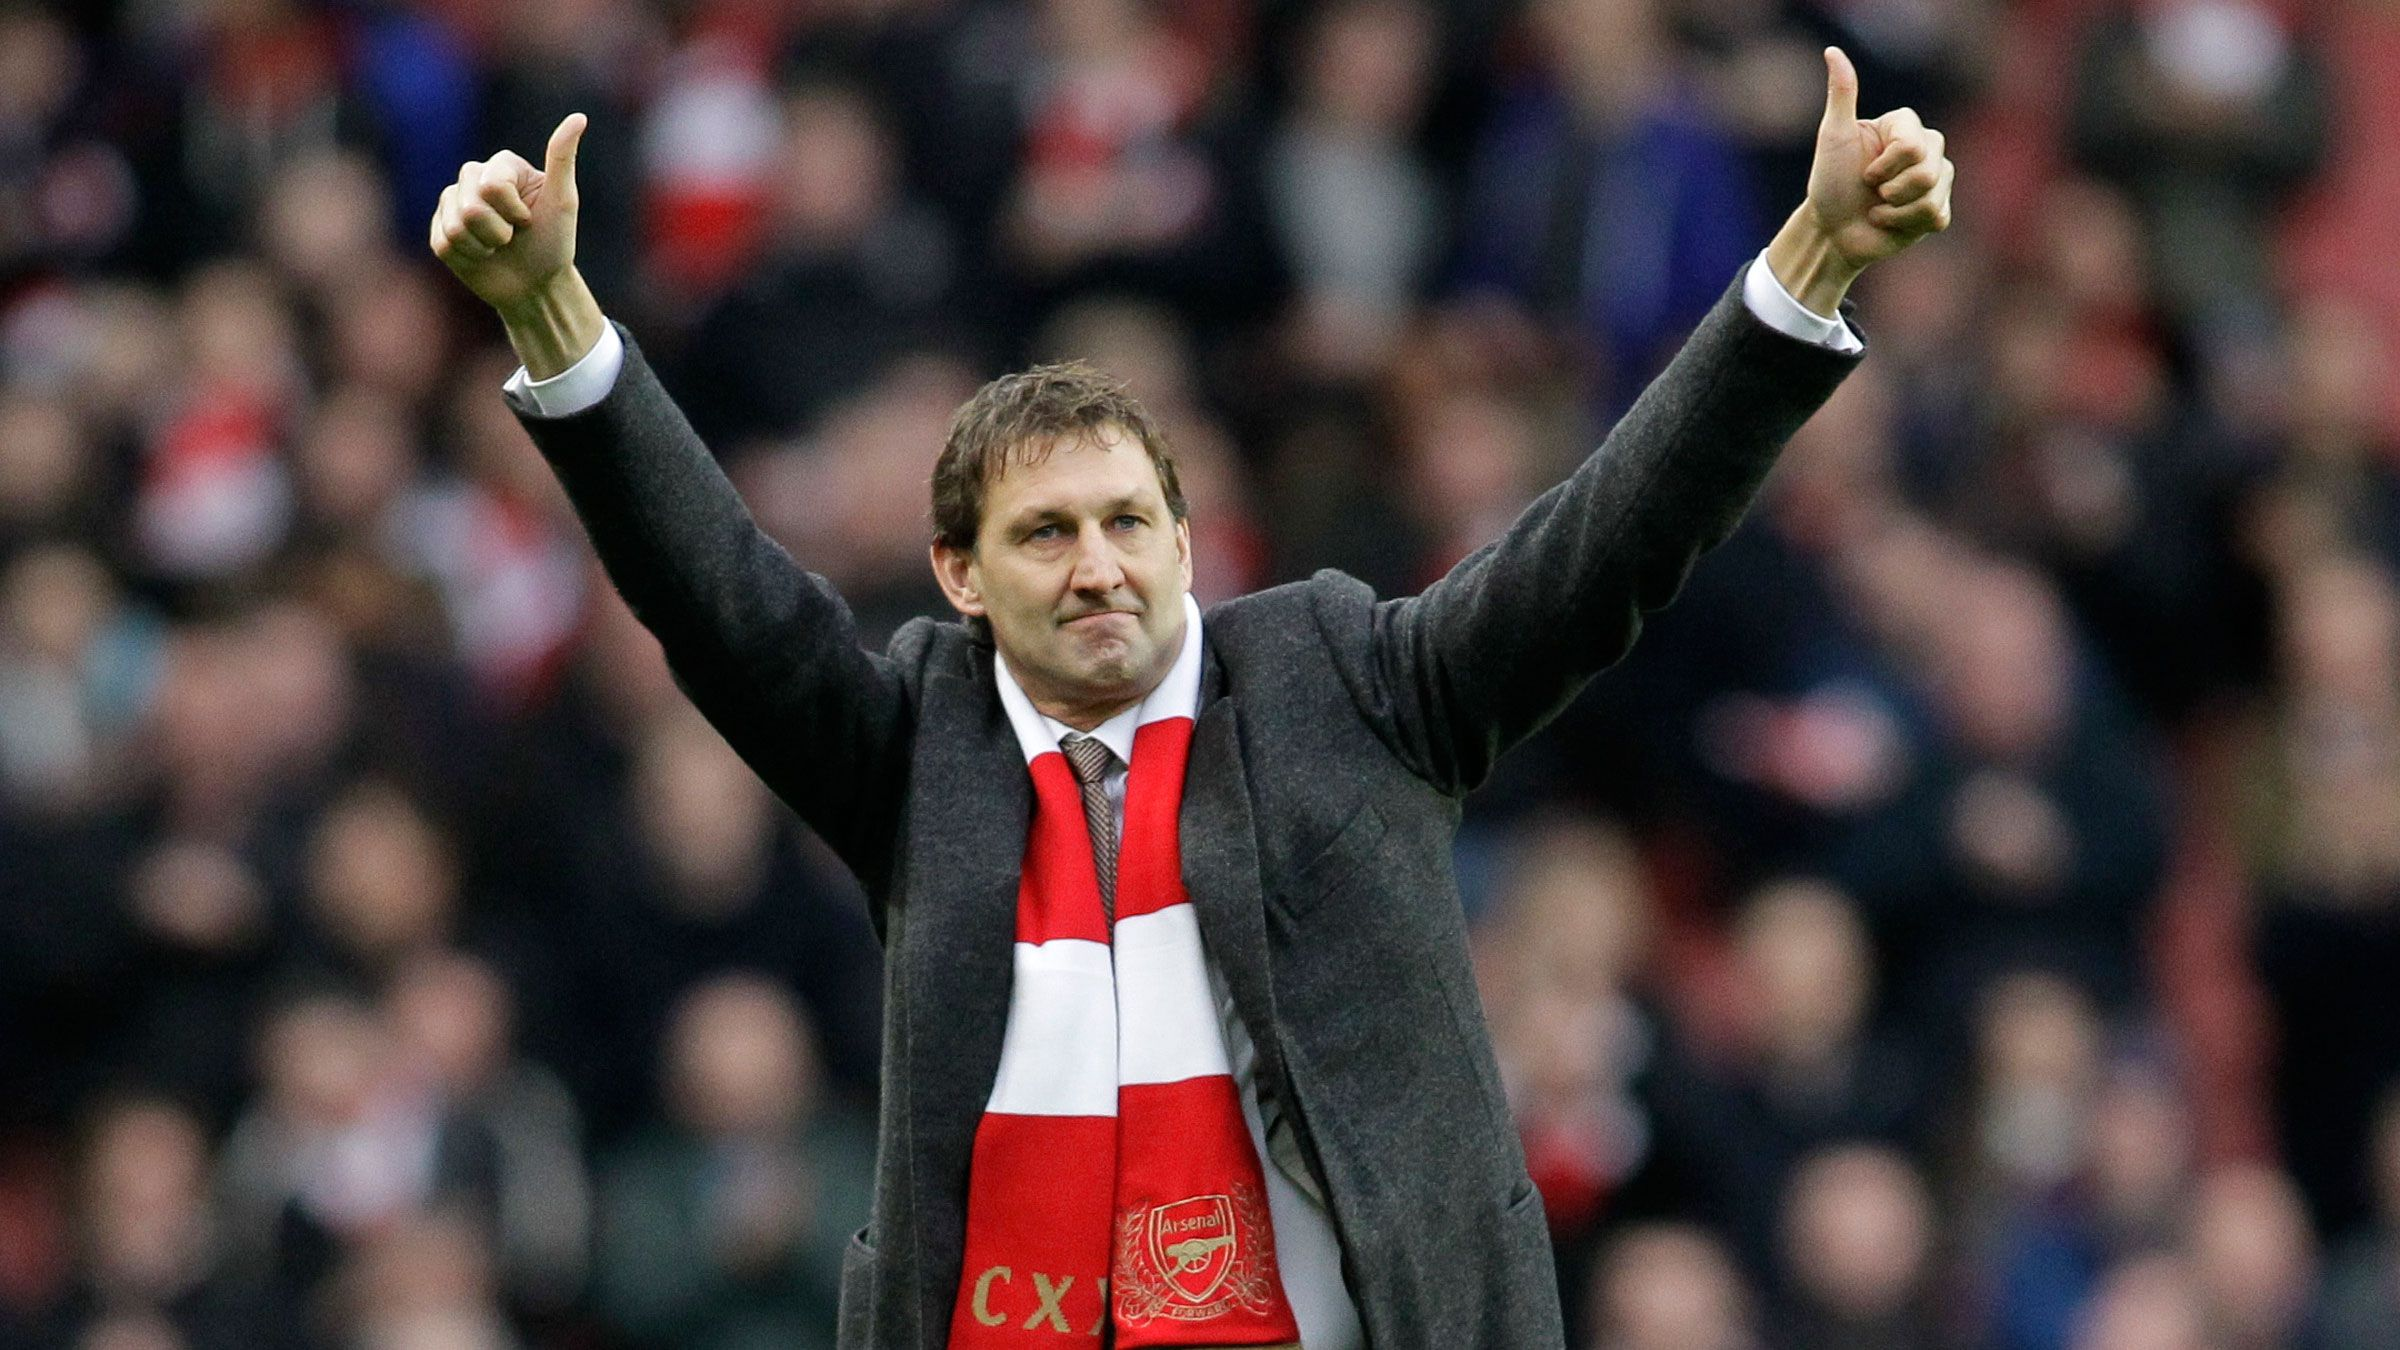 Tony Adams is being considered for the vacant manager's position at Turkish side Antalyaspor.